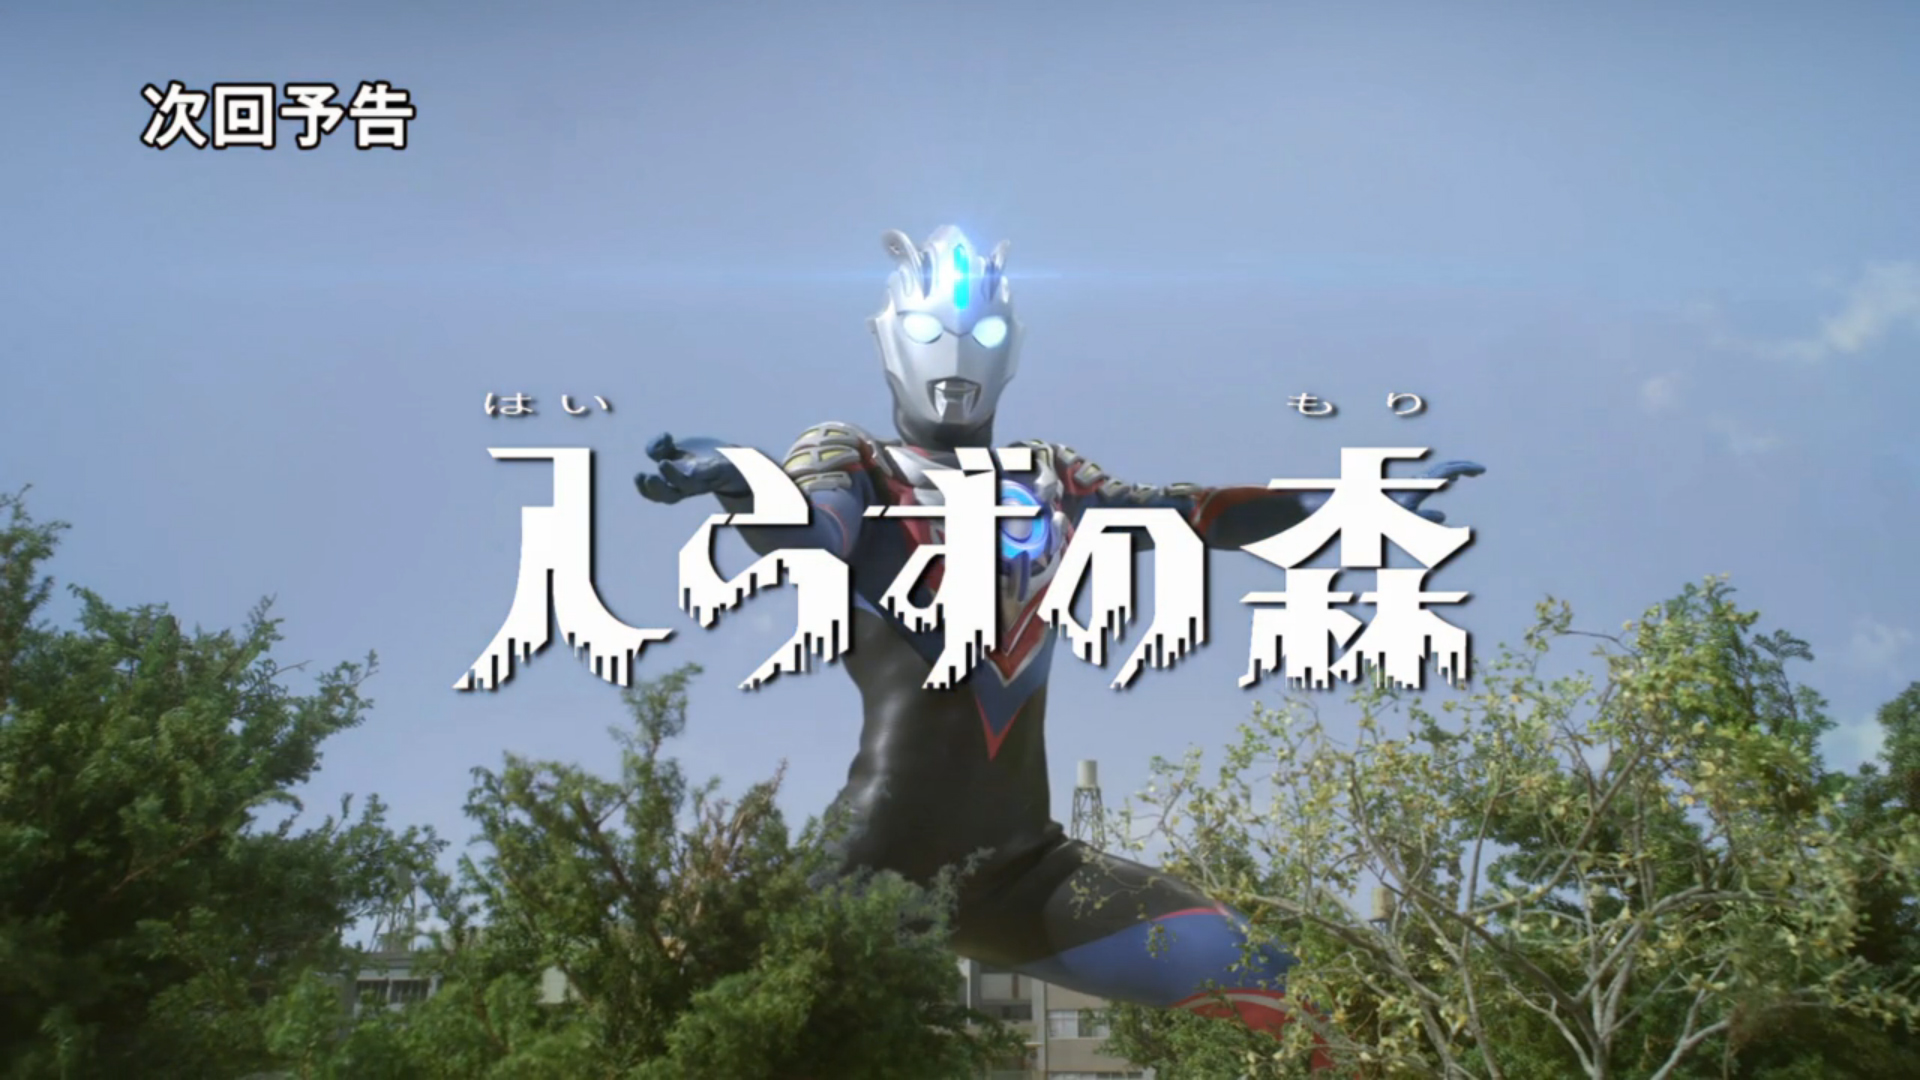 Next Time On Ultraman Orb: Episode 6